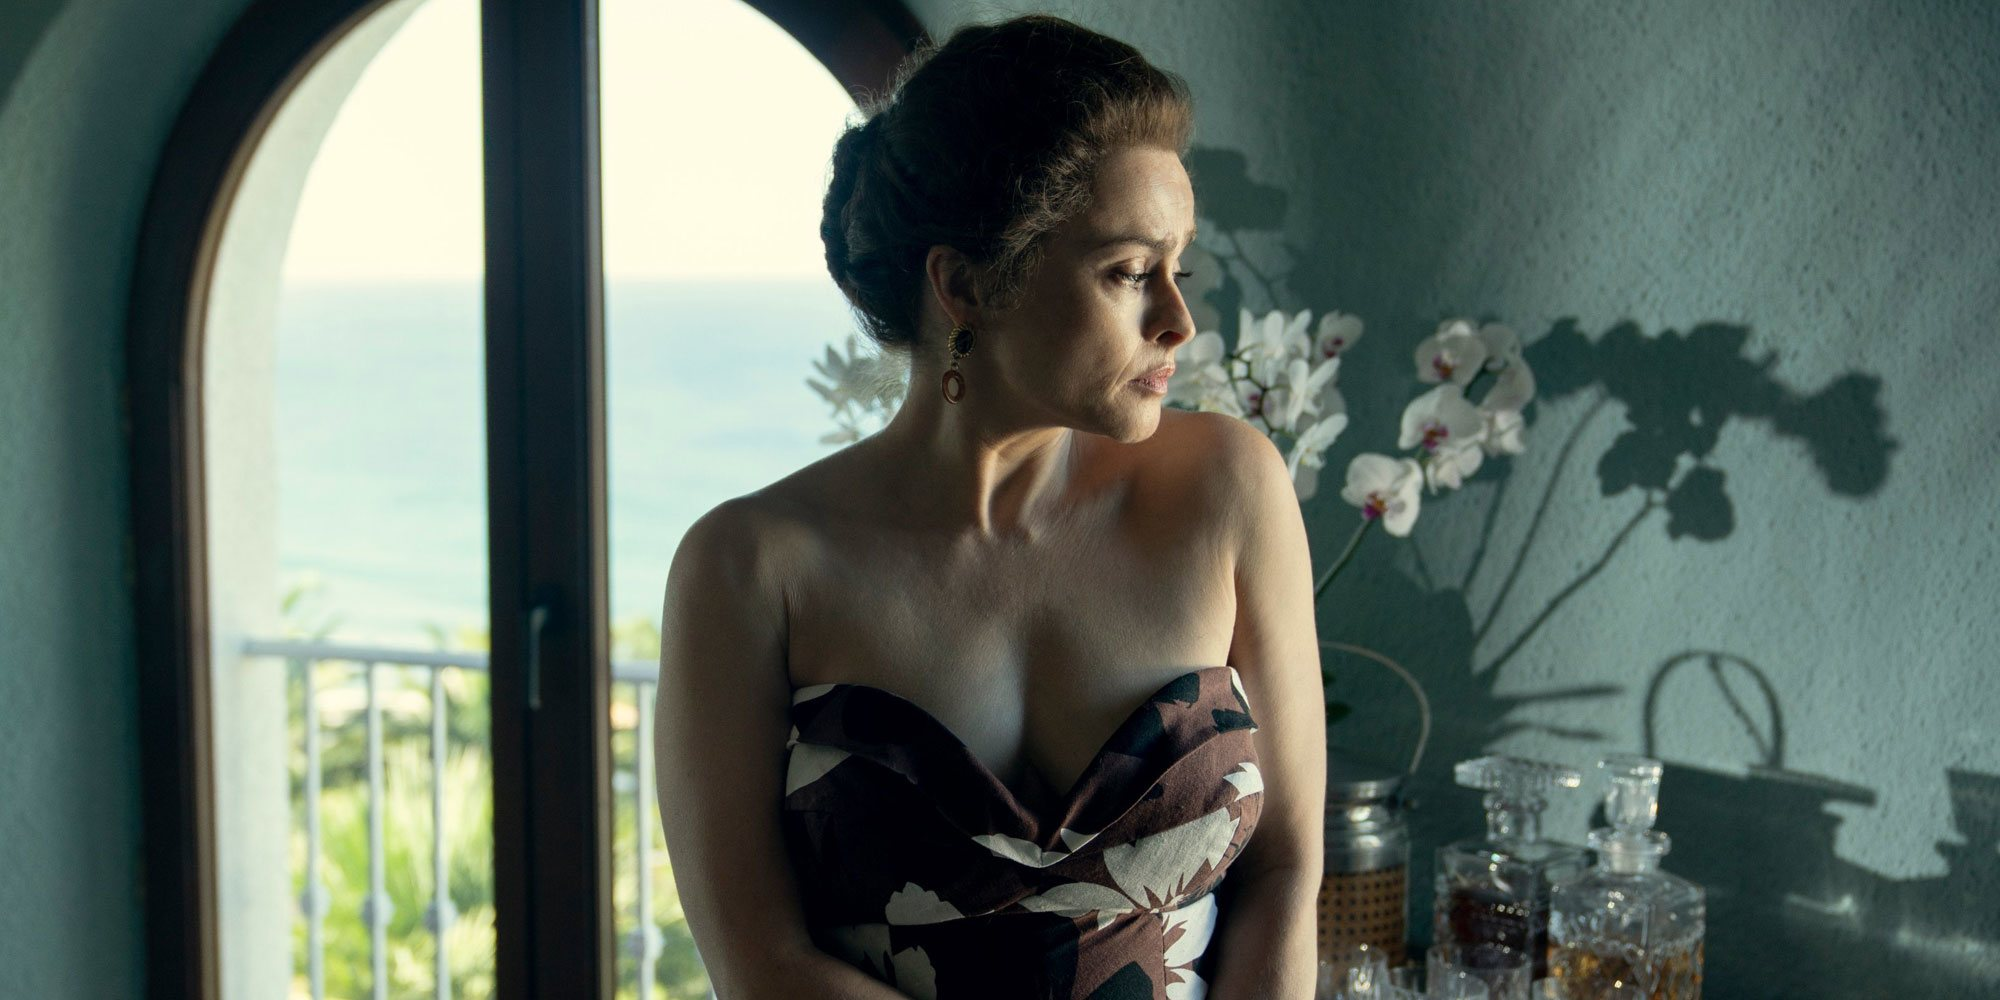 La advertencia de Helena Bonham Carter a los espectadores de 'The Crown'